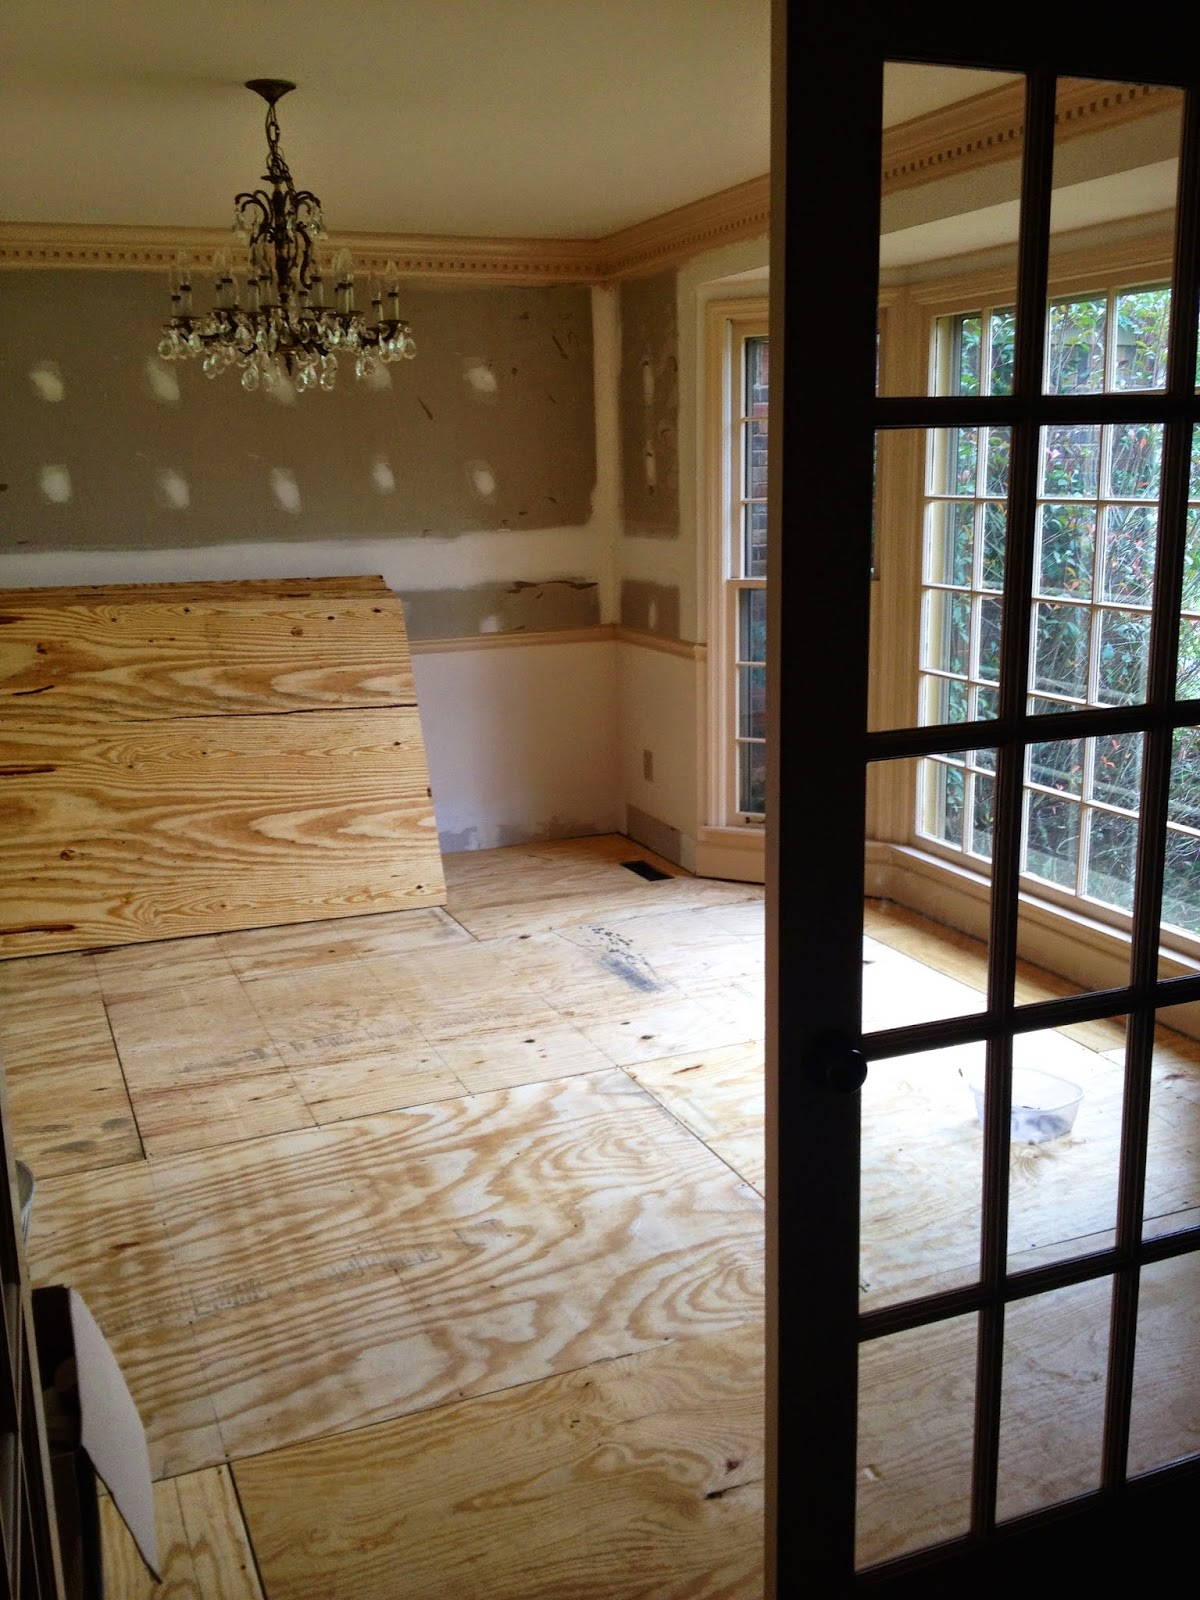 How to Save Thousands on Hardwoods - tricks to stretch your dollar to get the floors you want!